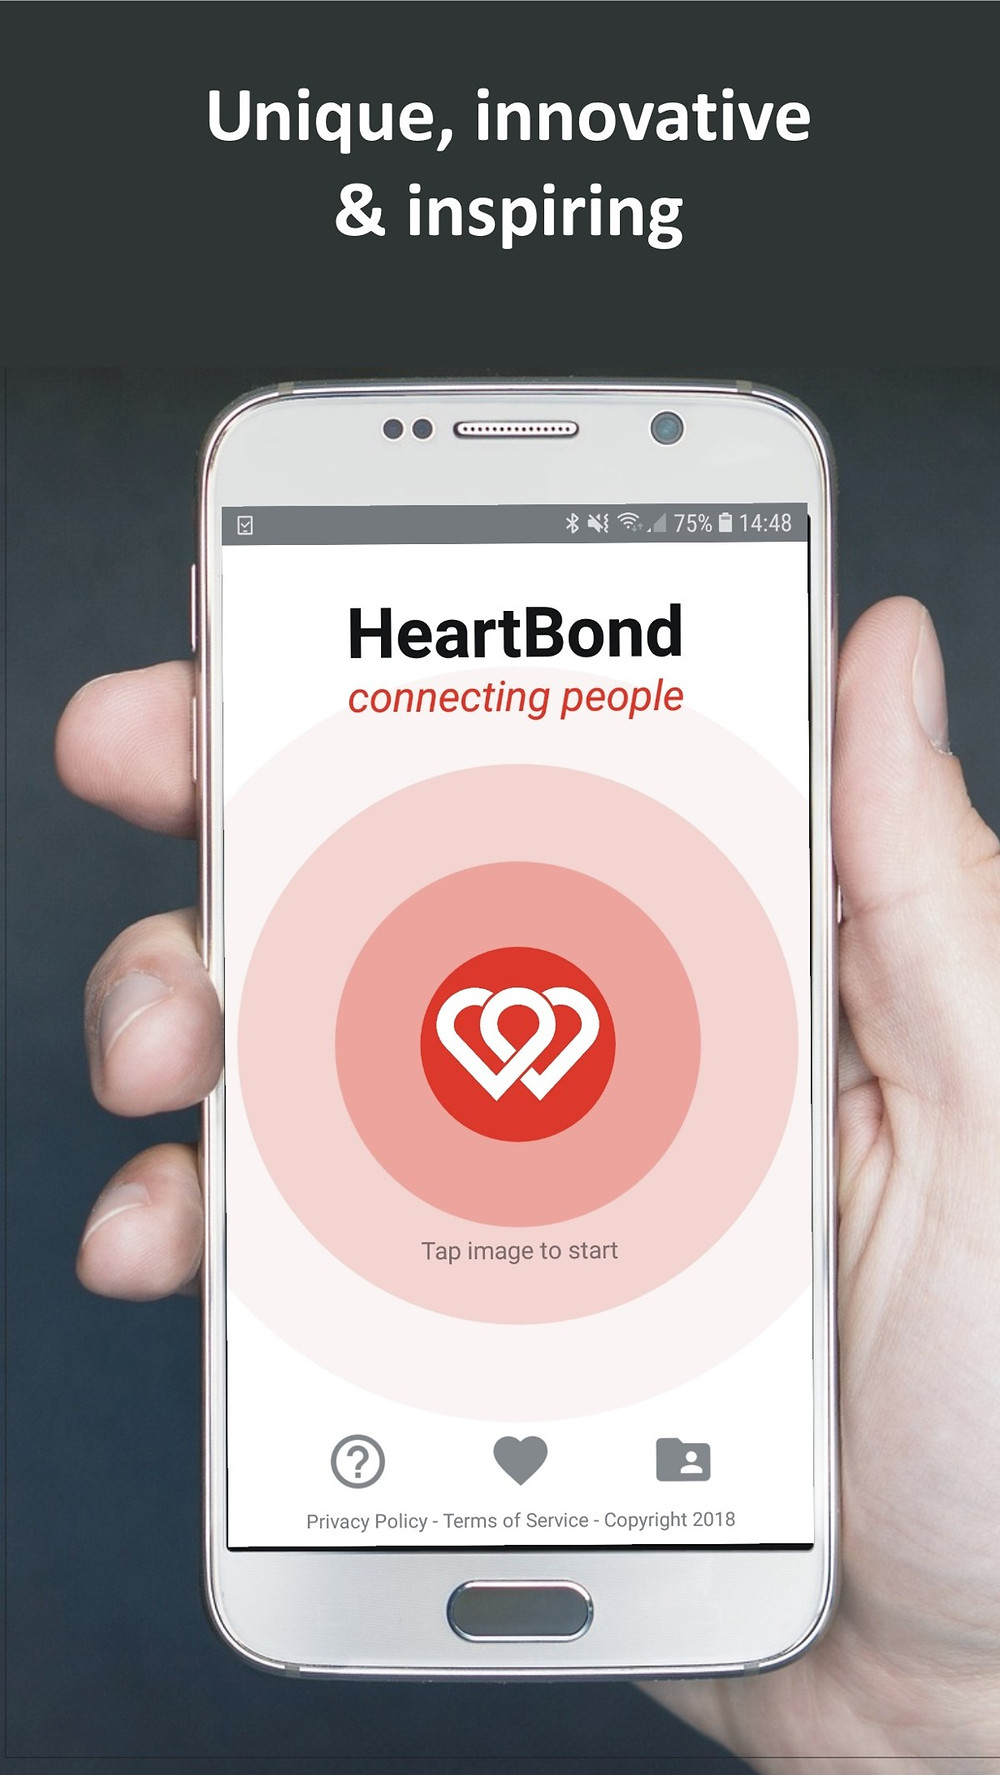 Heartbond App - New!